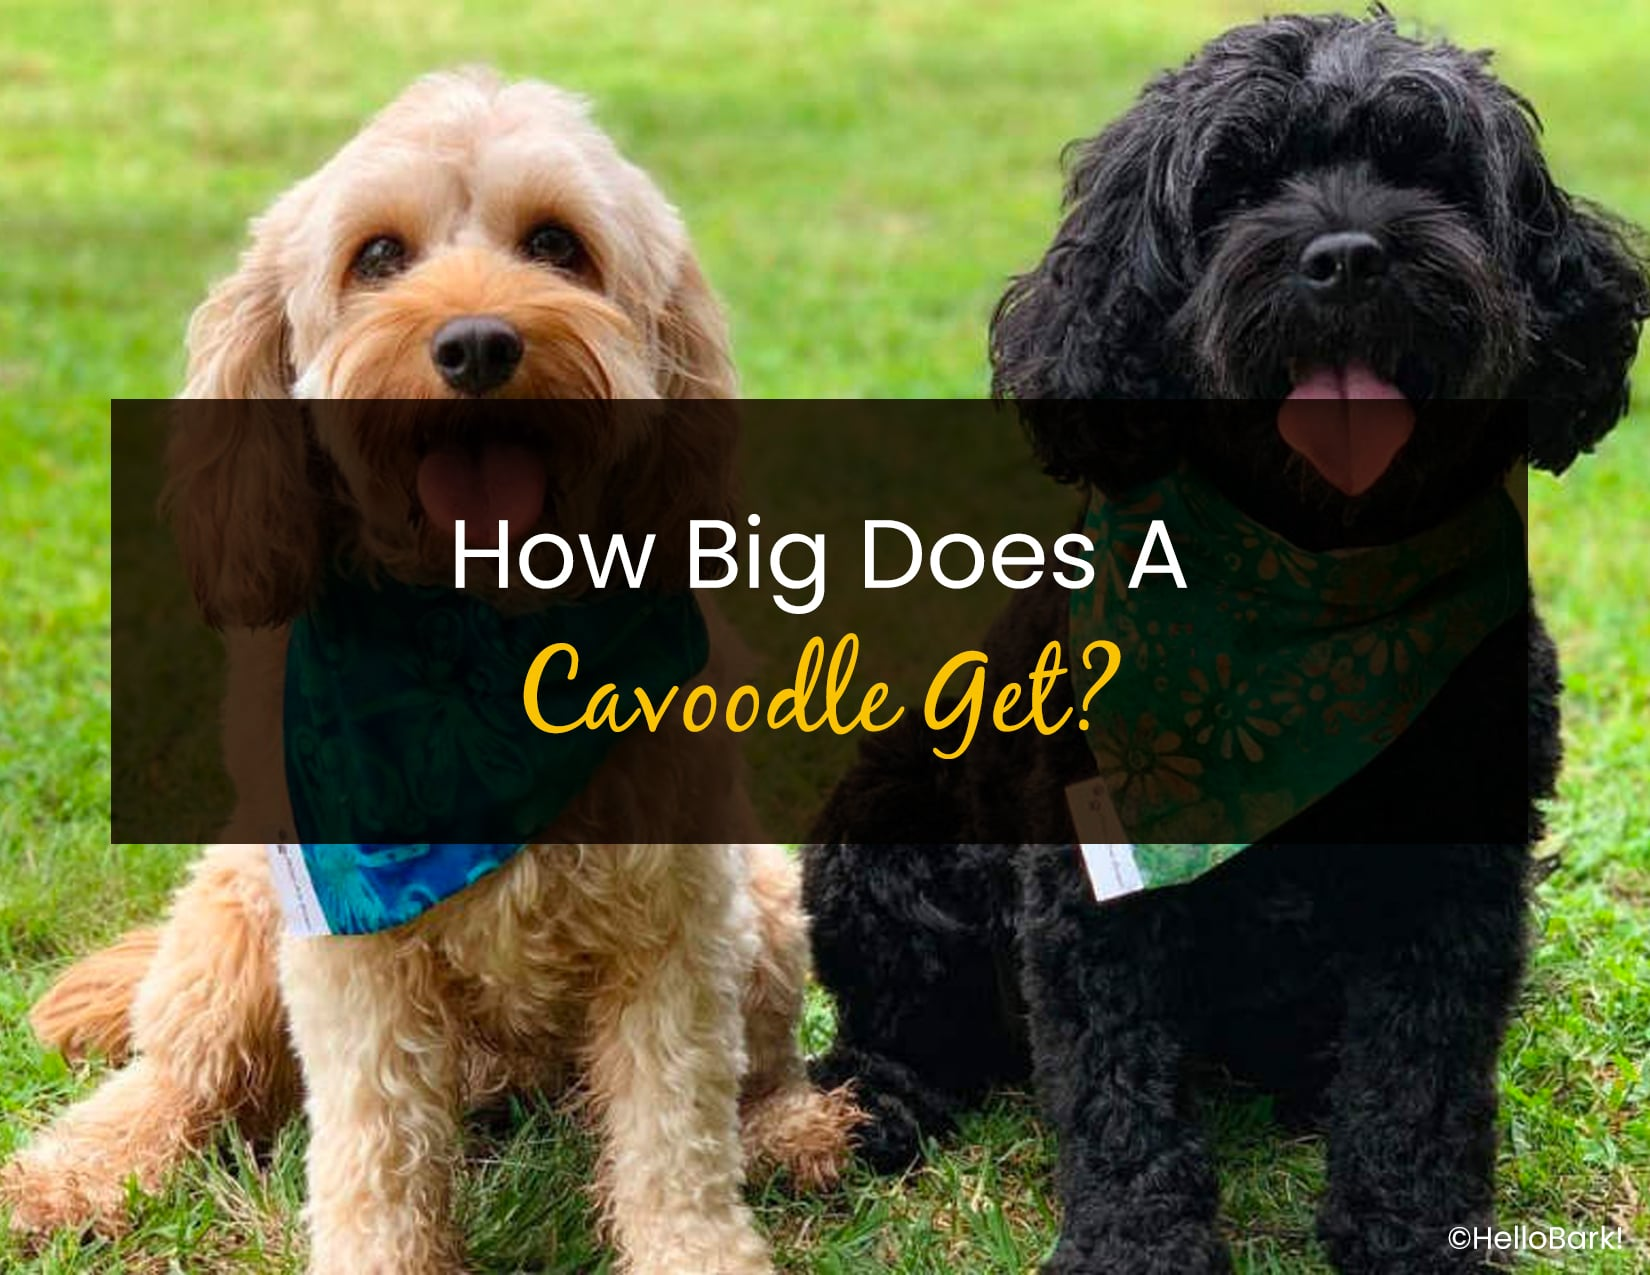 How Big Does A Cavoodle Get